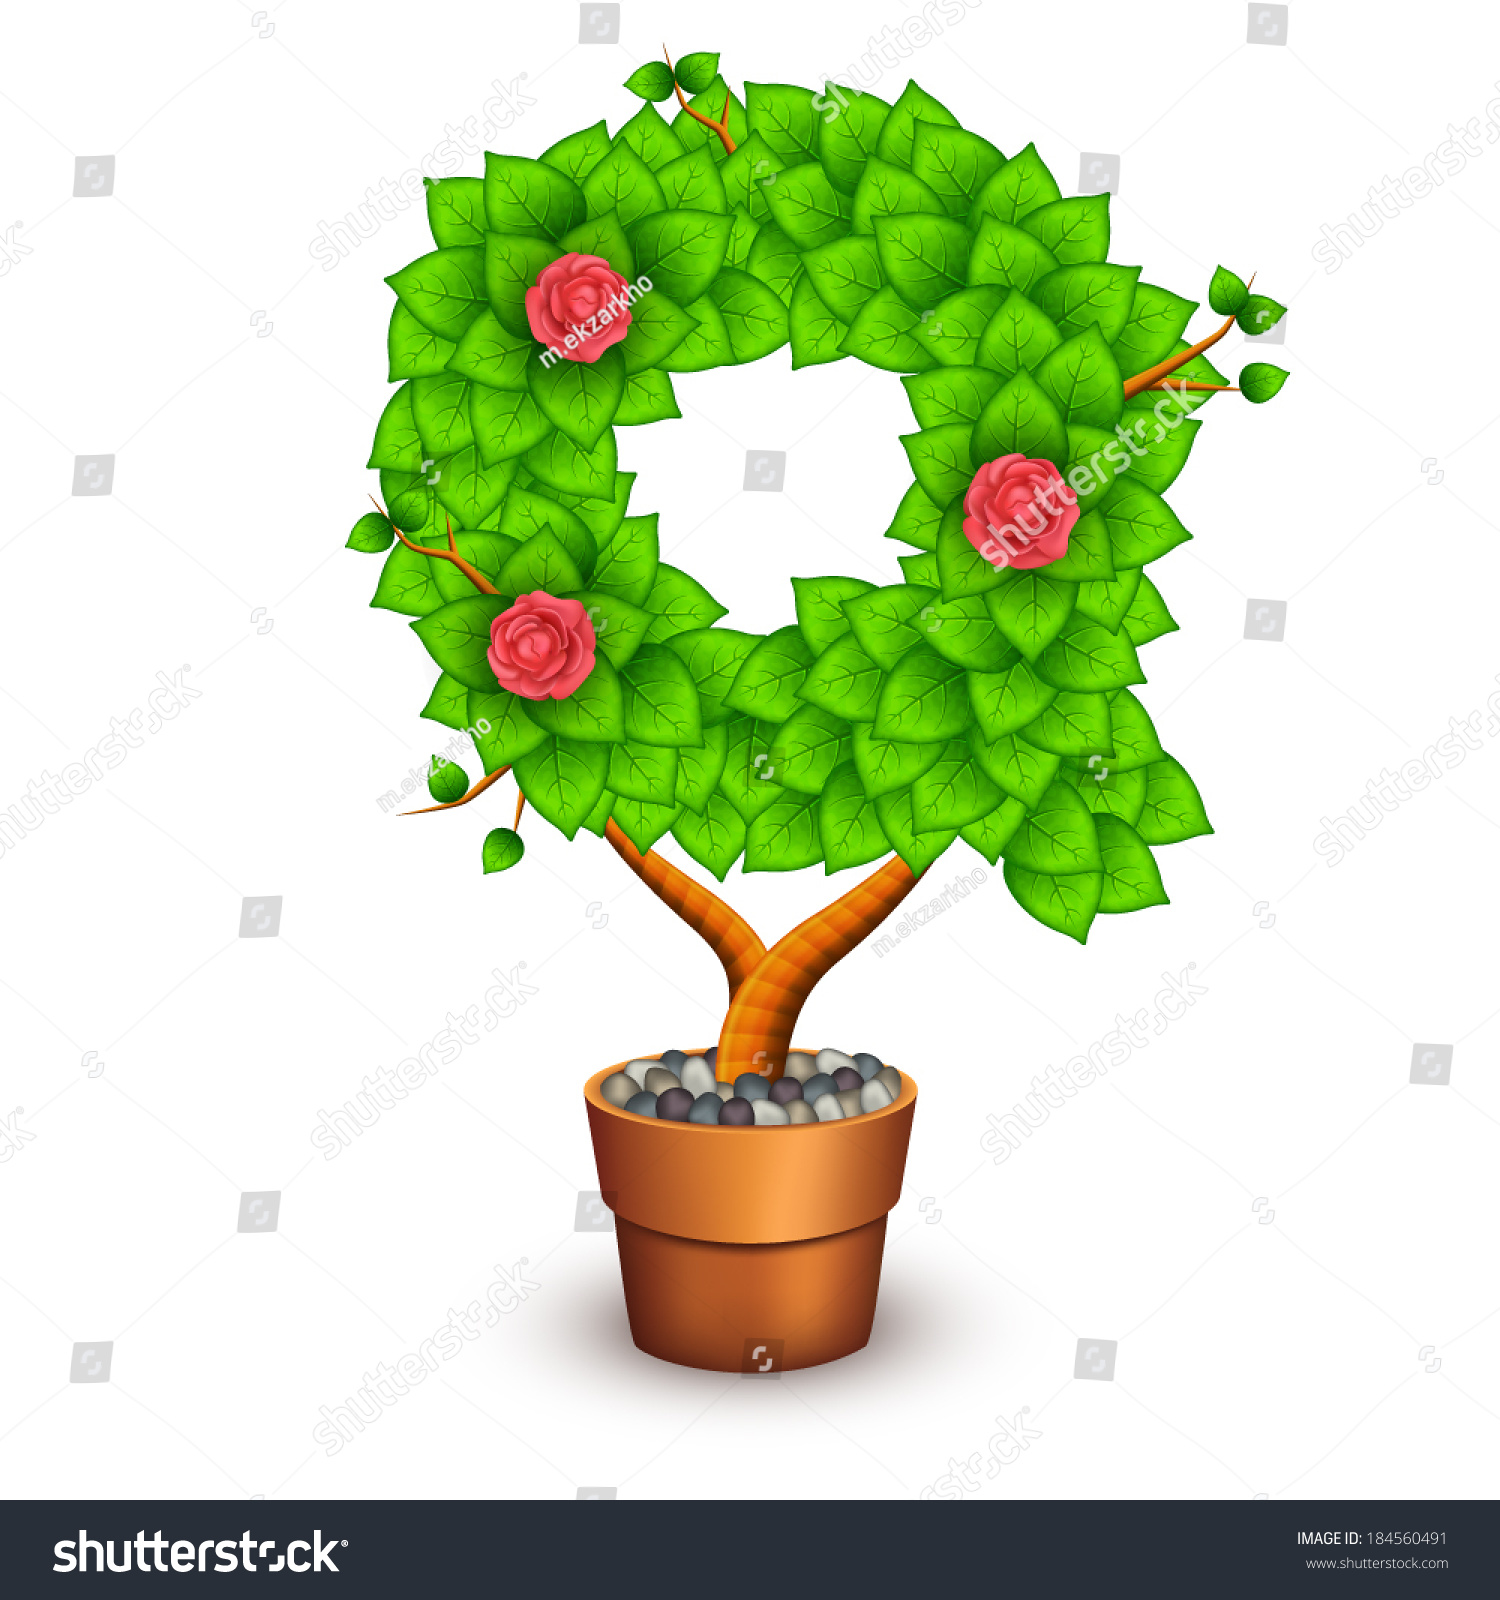 Isolated tree with flowers in clay pot. In the form of letter Q